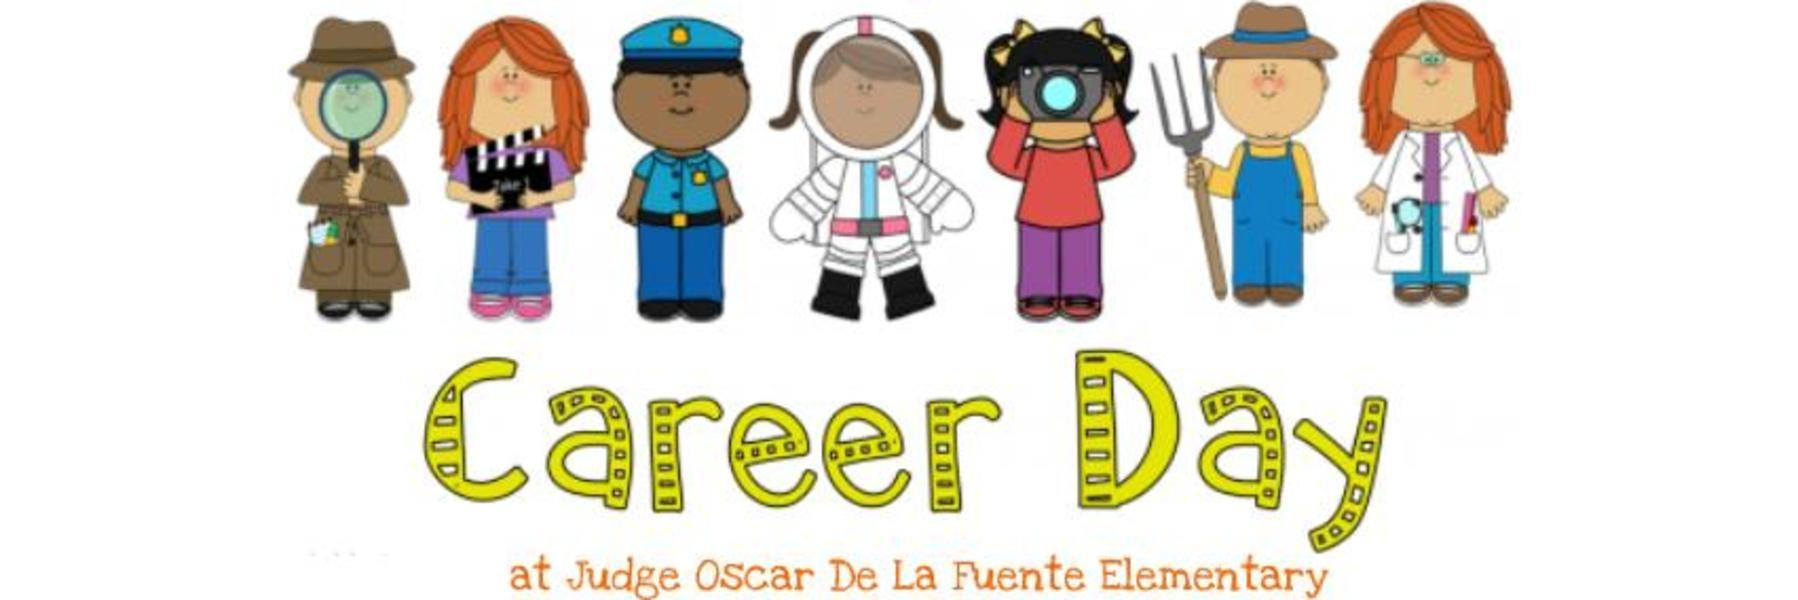 Career Day Clipart Cilpart For Career Day Clip Art Clipart Station